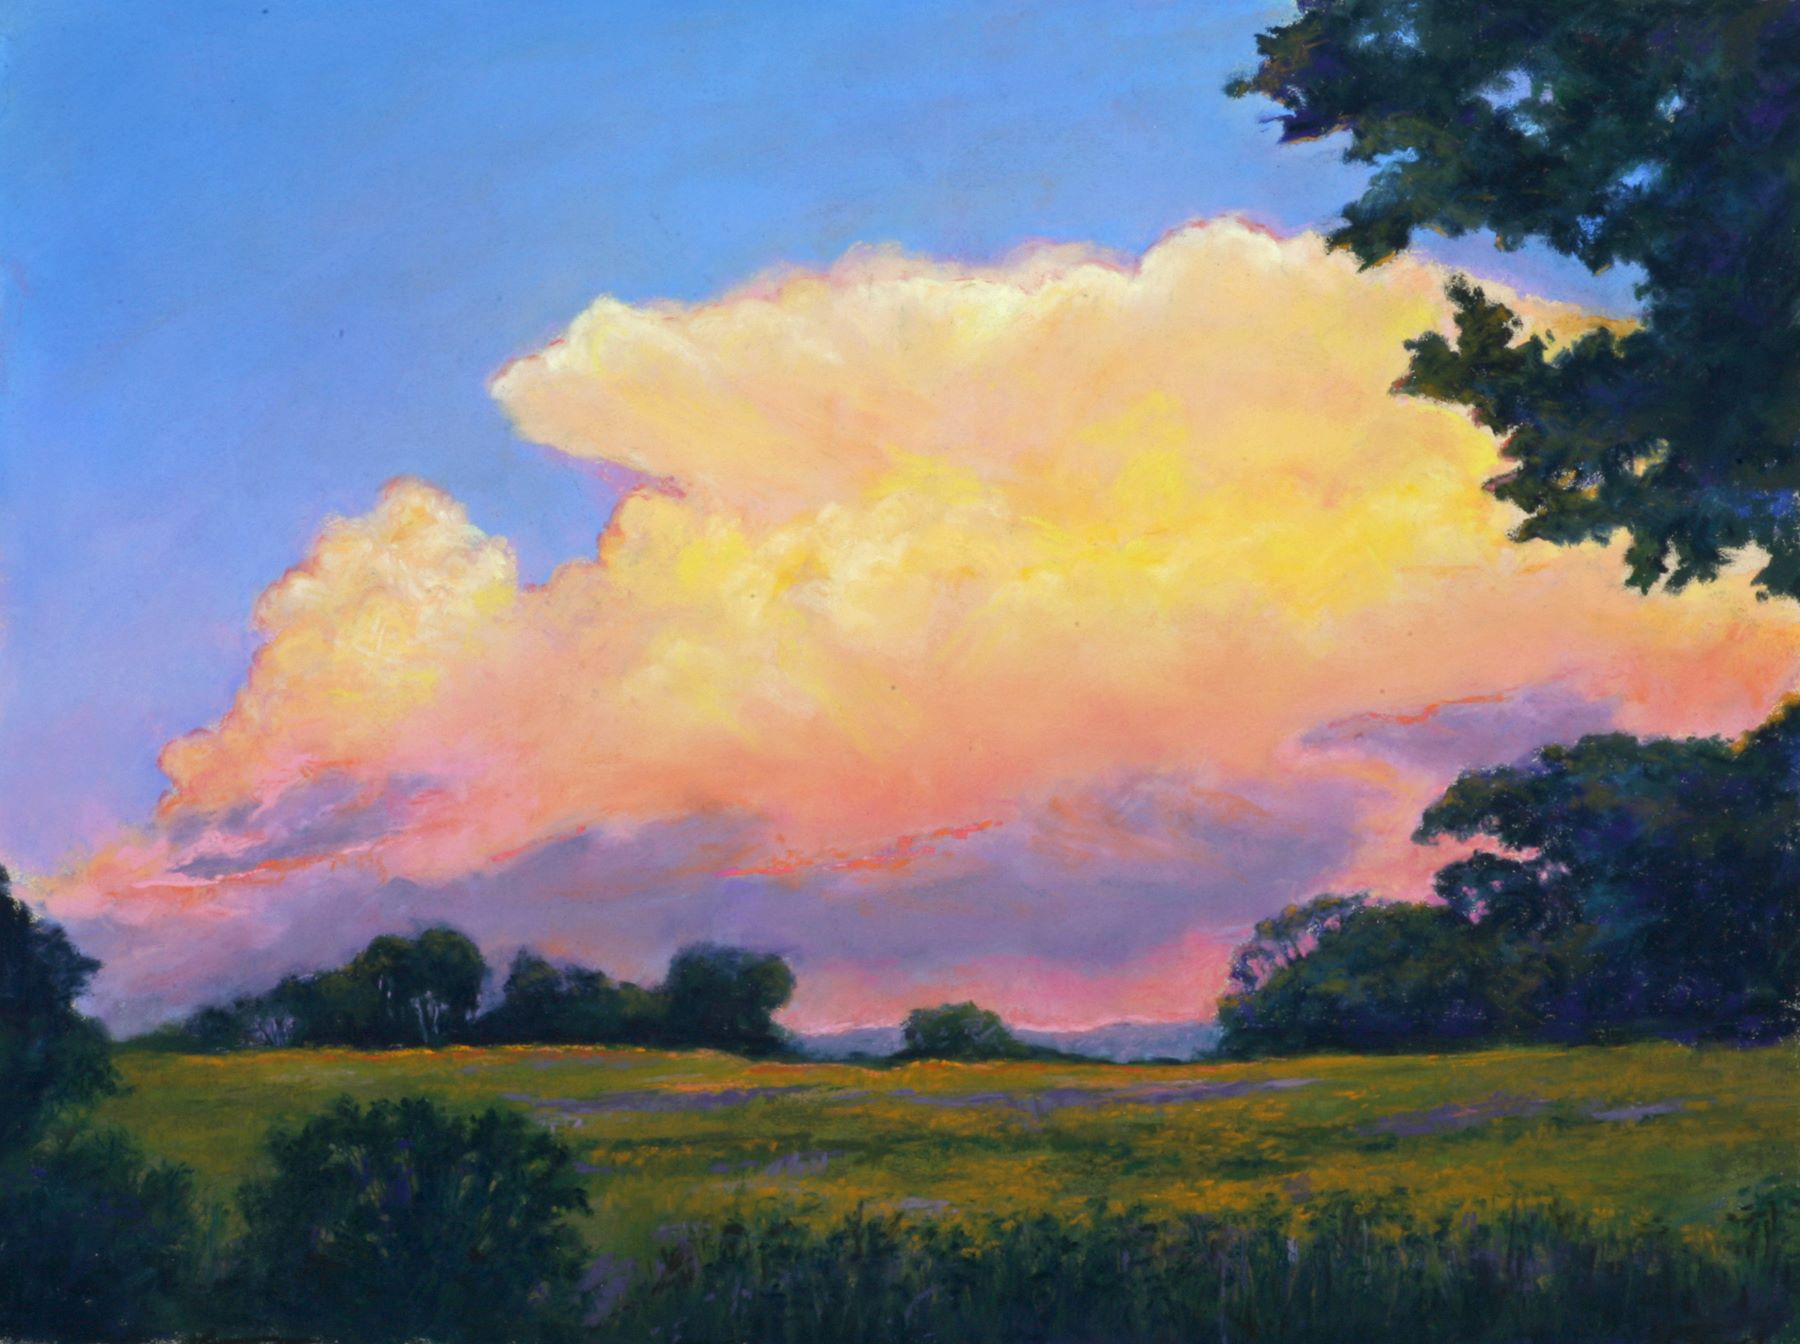 pastel painting of grassy field and purple and pink sunset